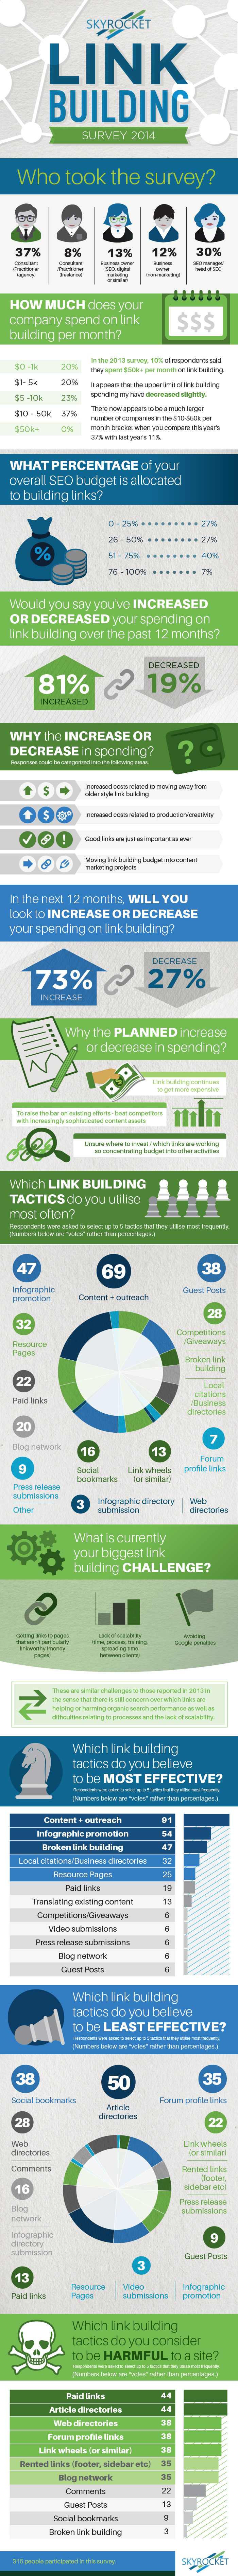 2014 link building survey